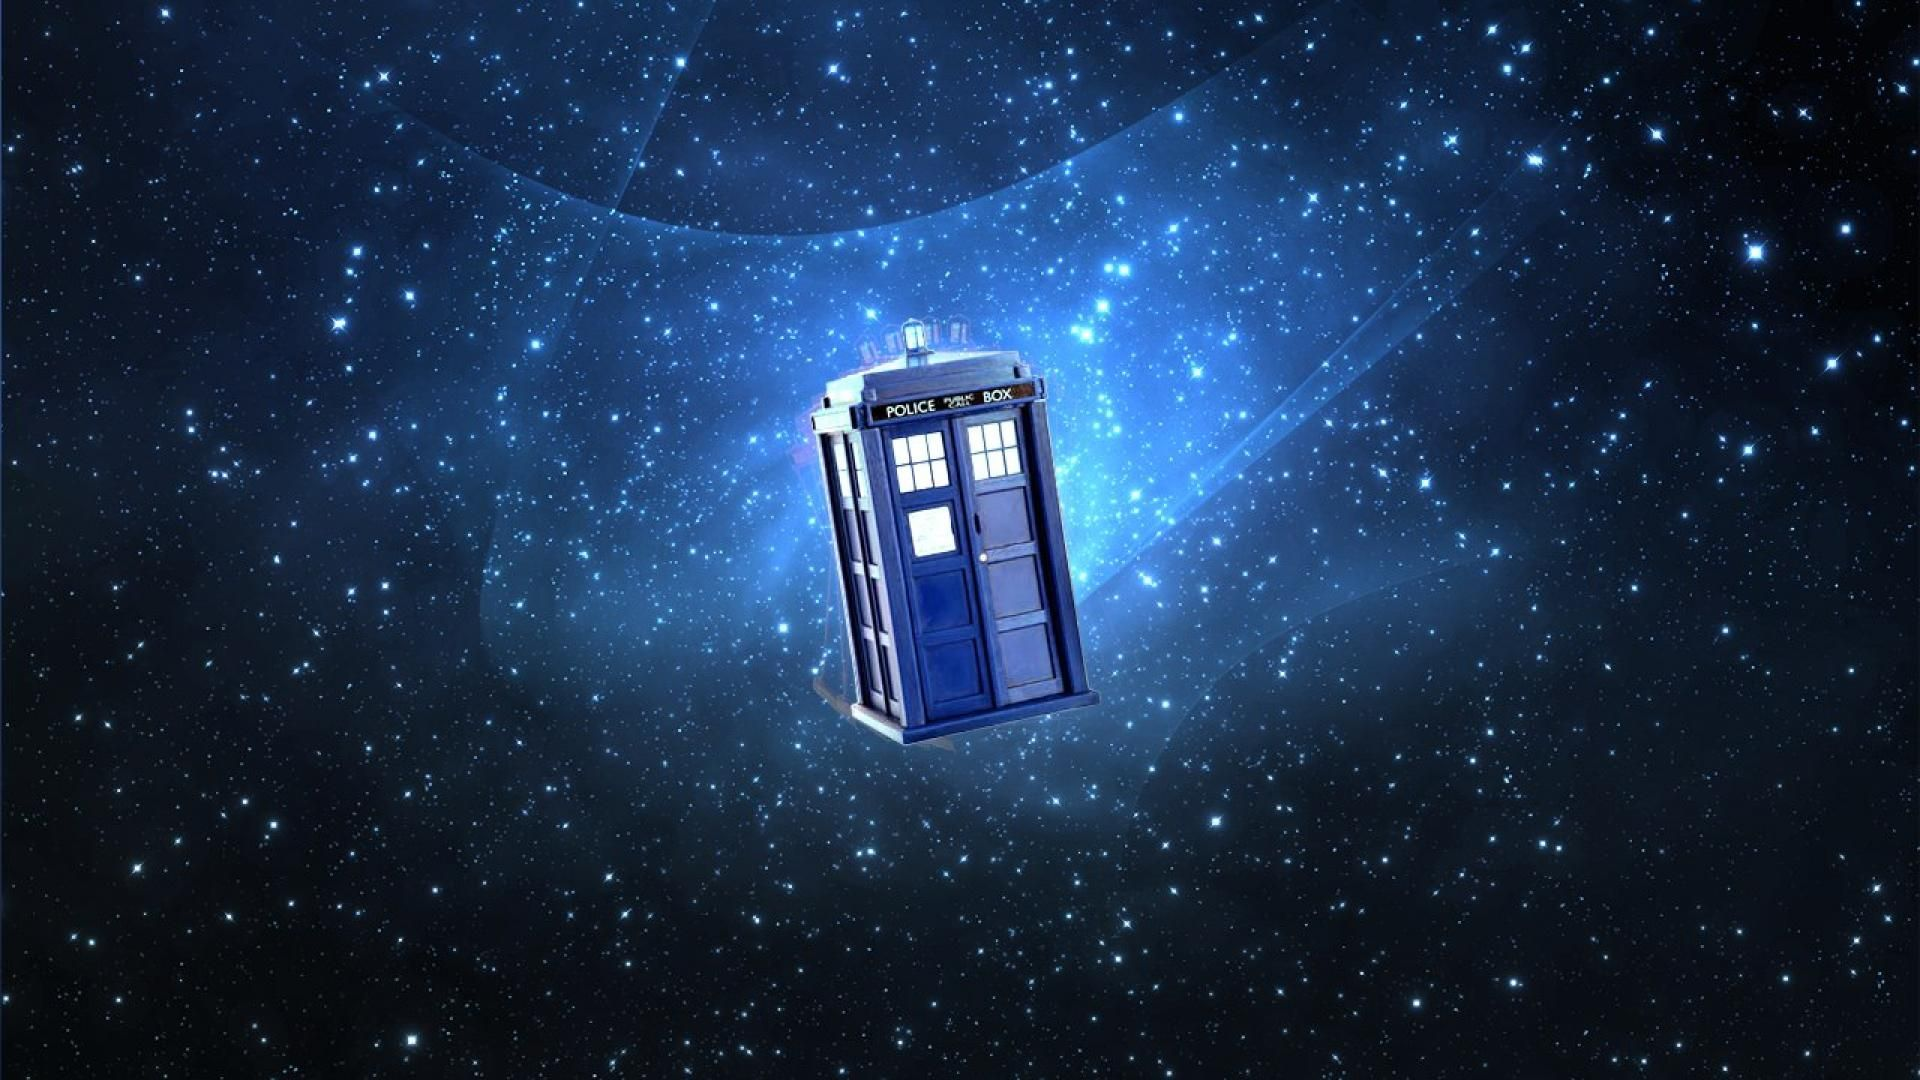 664 Doctor Who Hd Wallpapers Backgrounds Wallpaper Abyss